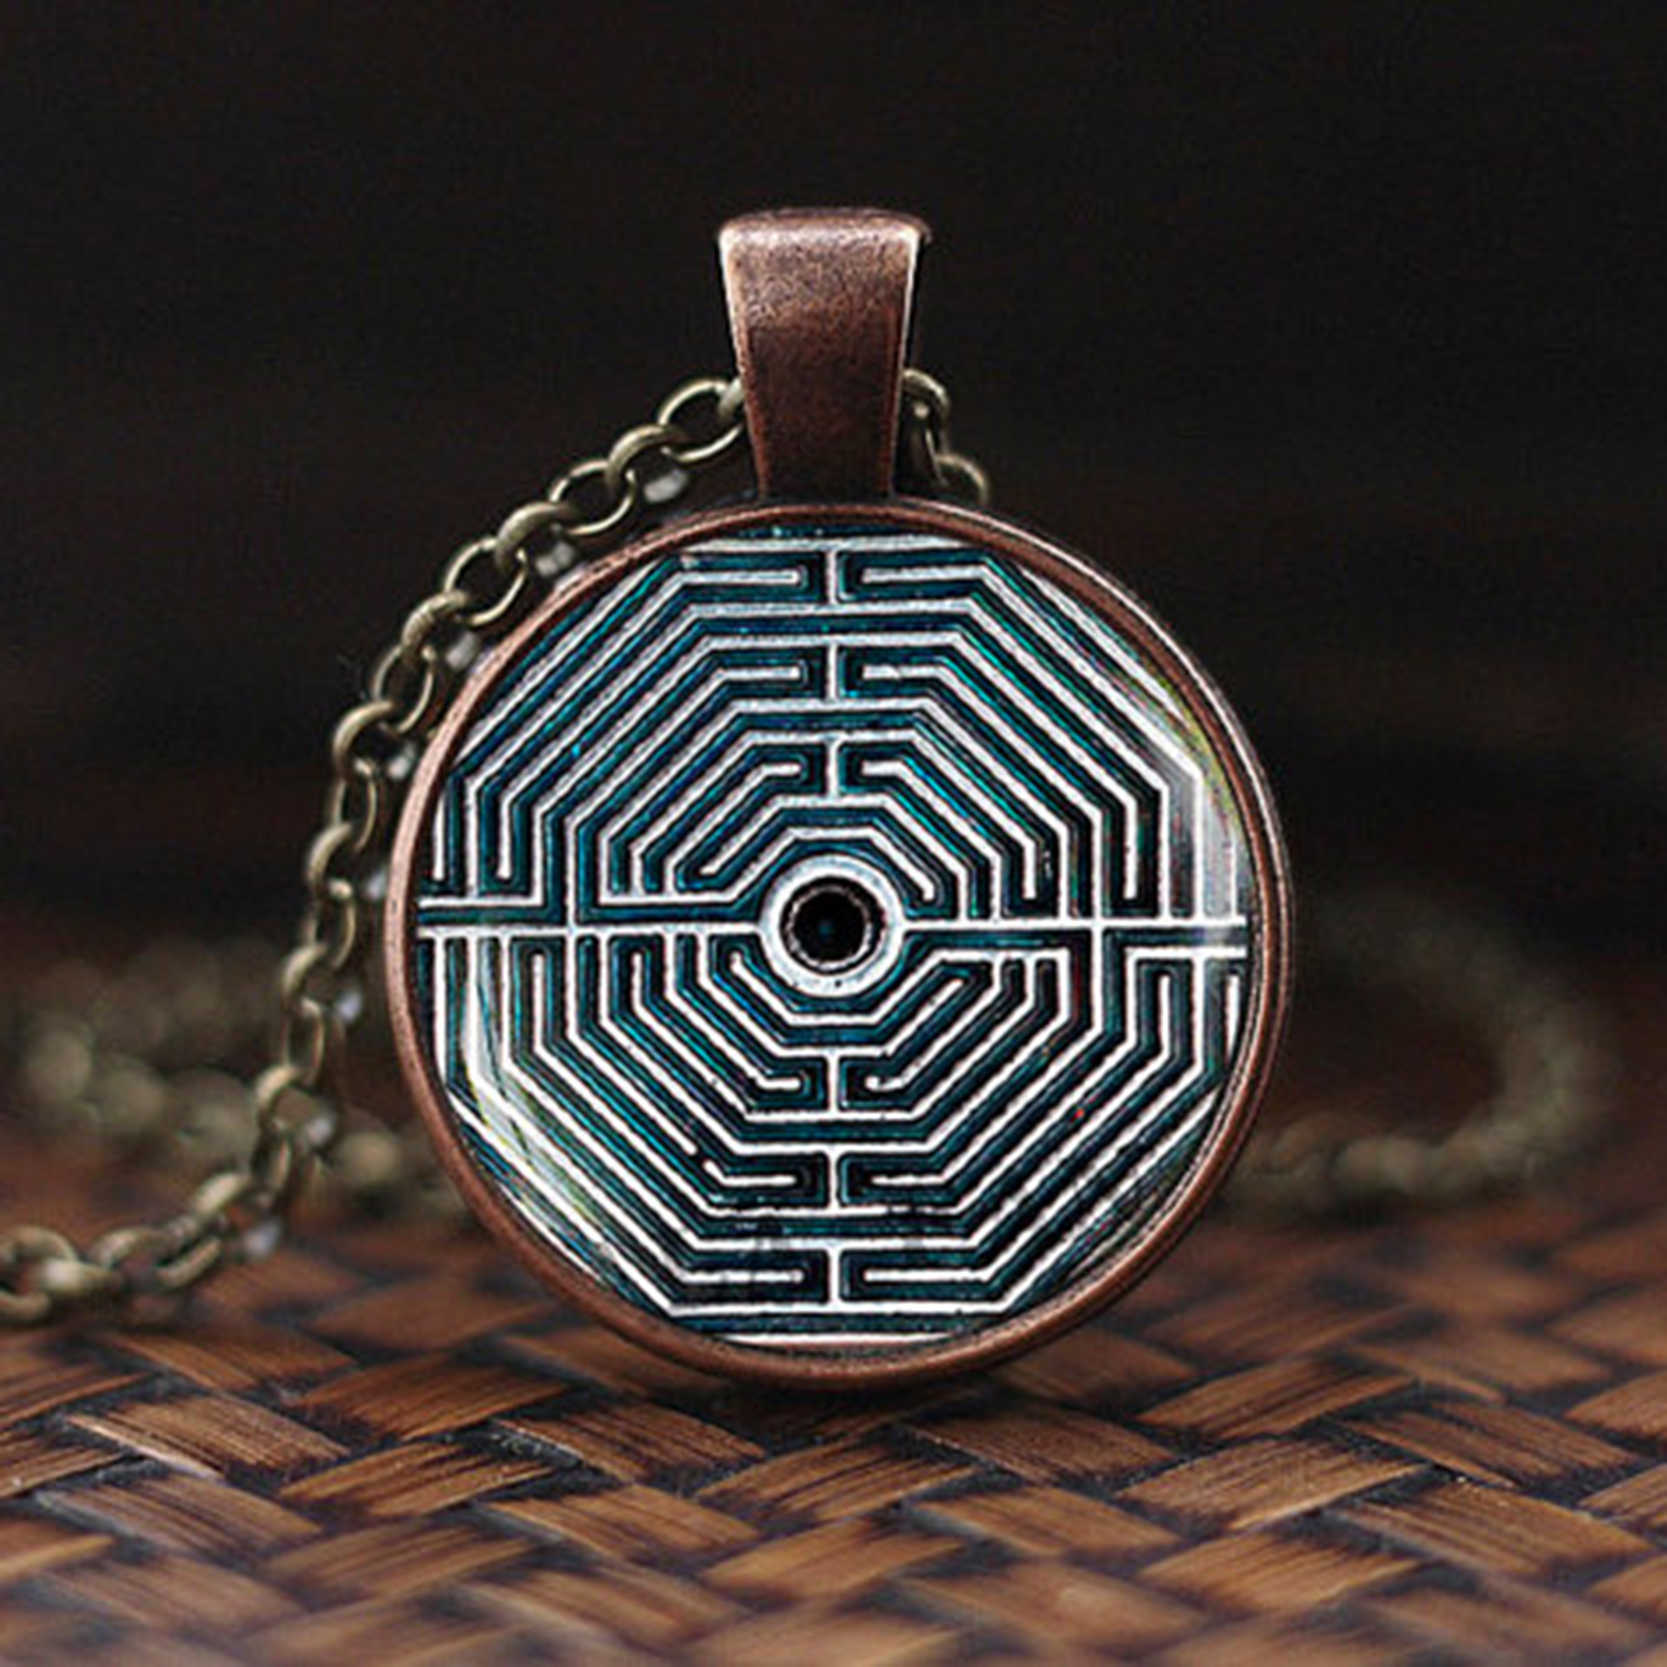 Mayan Calendar Pendant Jewelry Aztec Necklace Antique Bronze Chain Astronomy Archaeology For